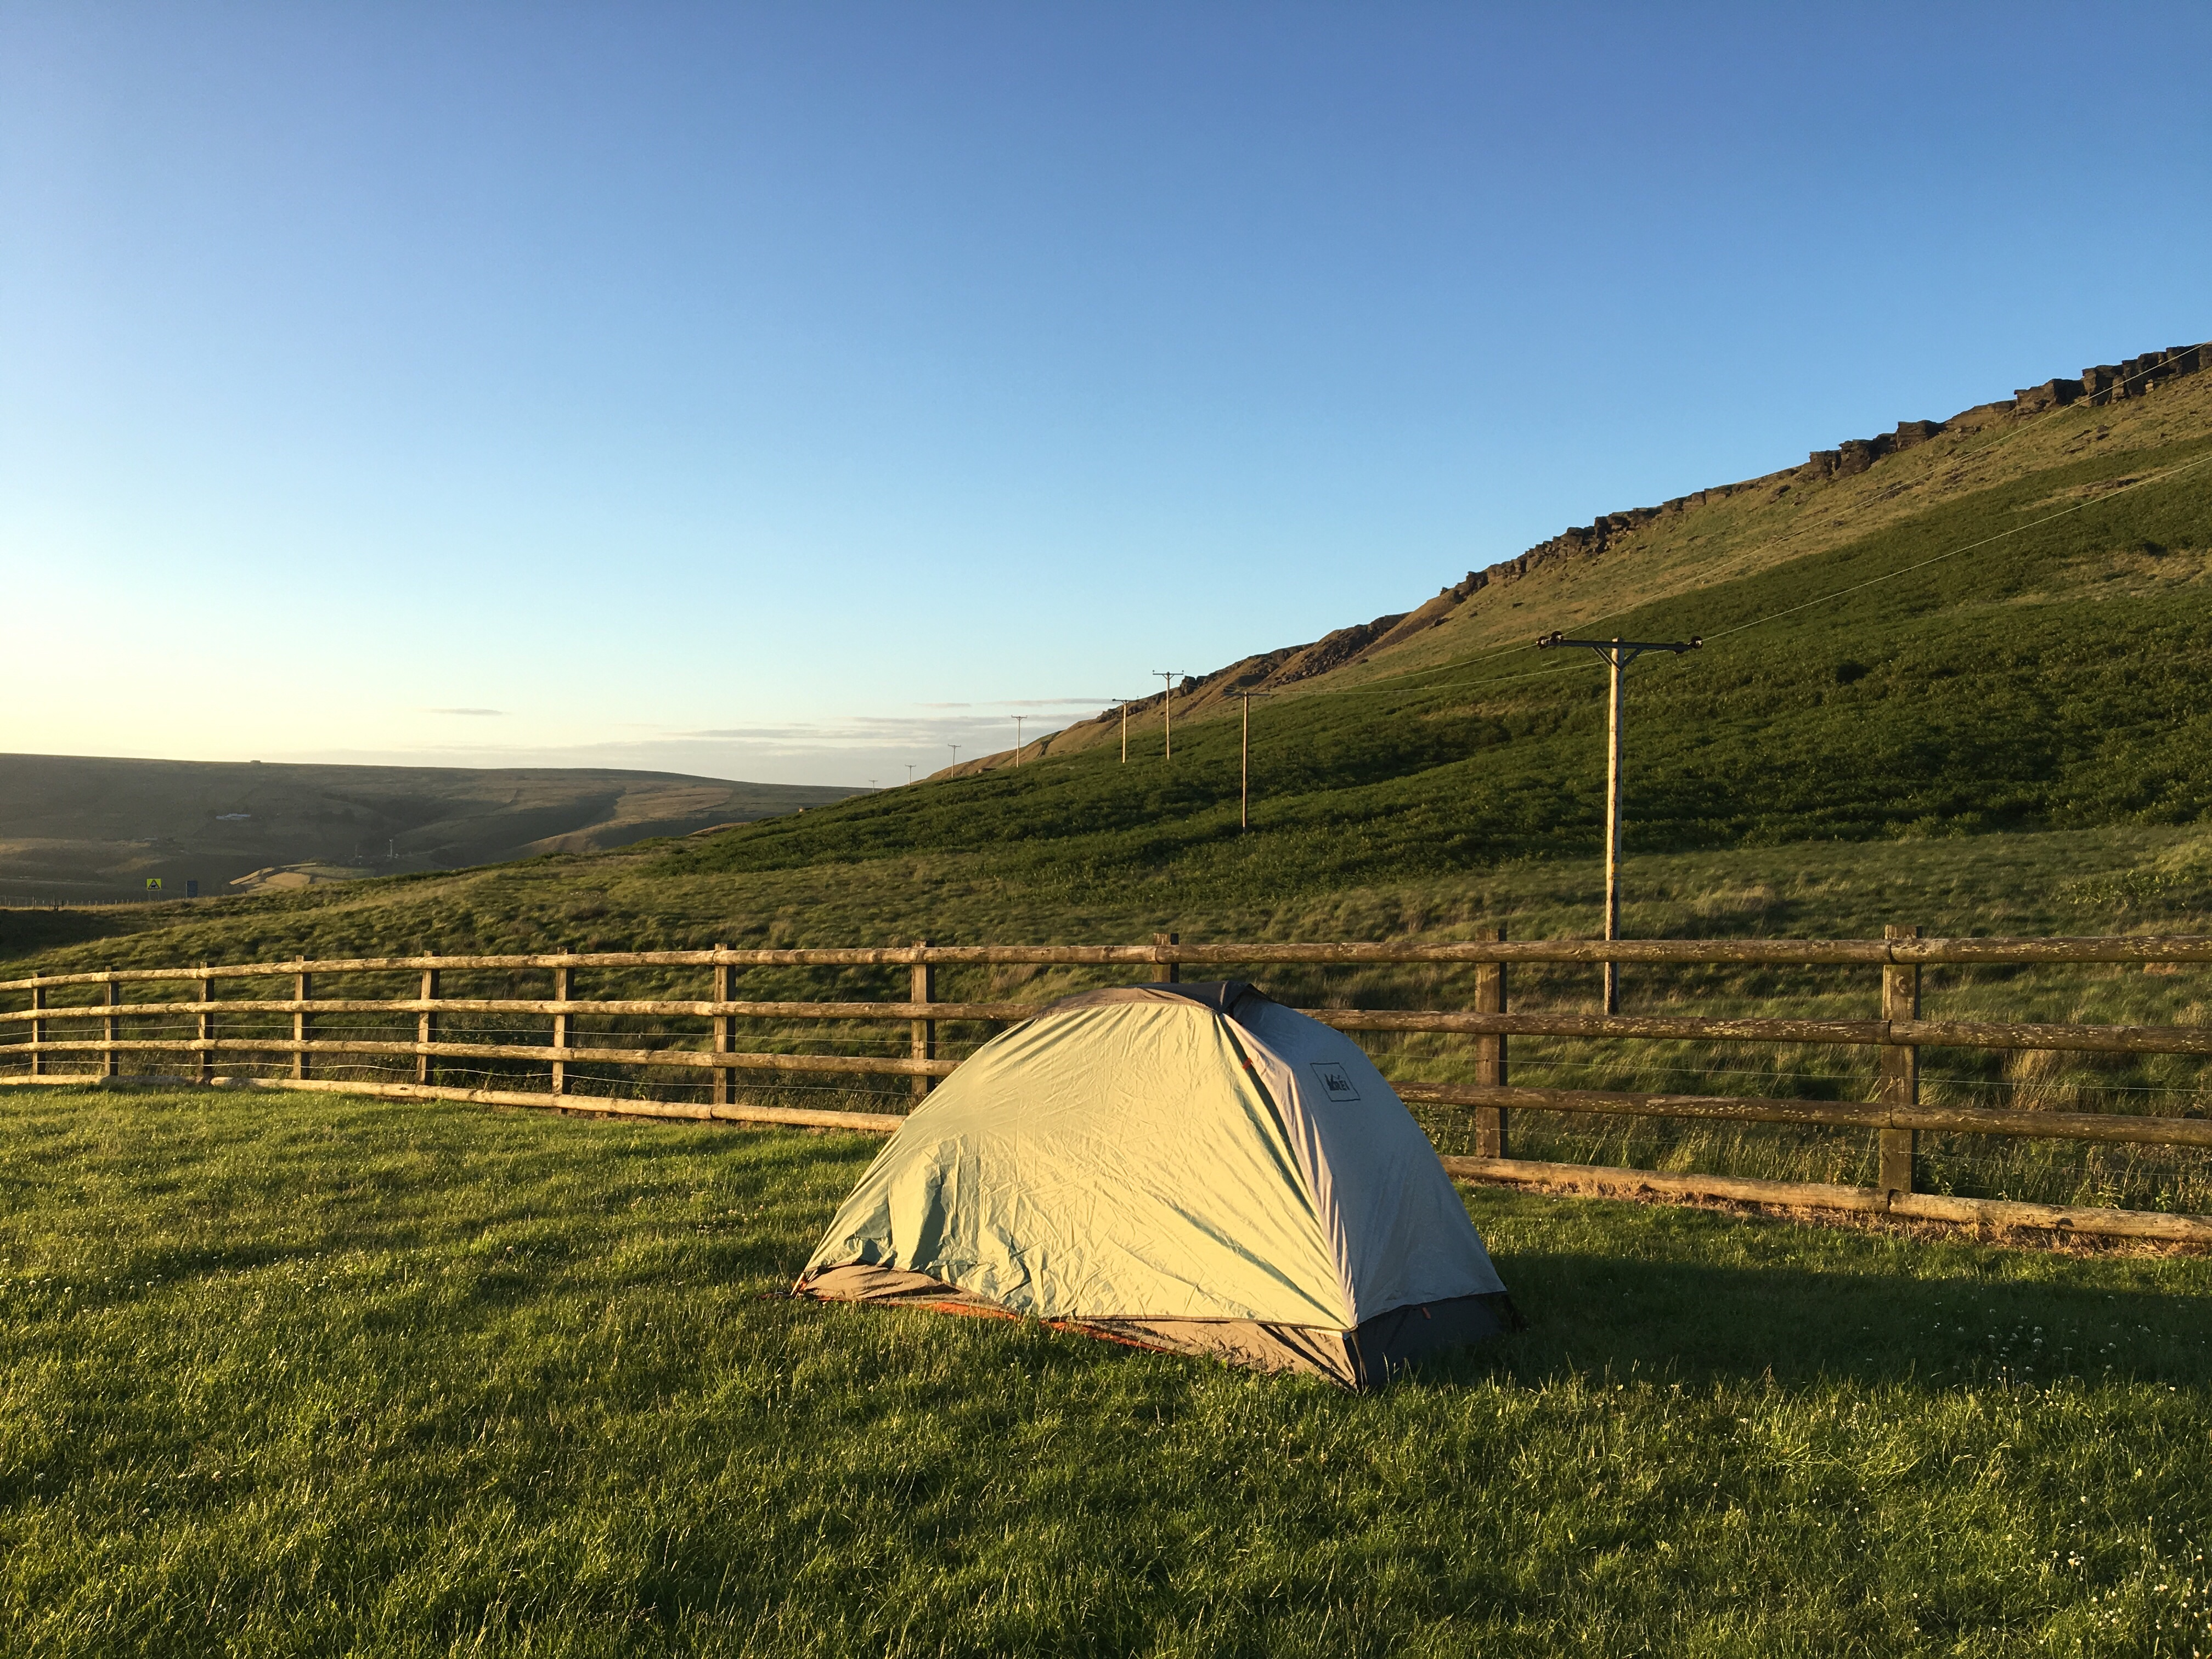 Campsite on the Pennine Way